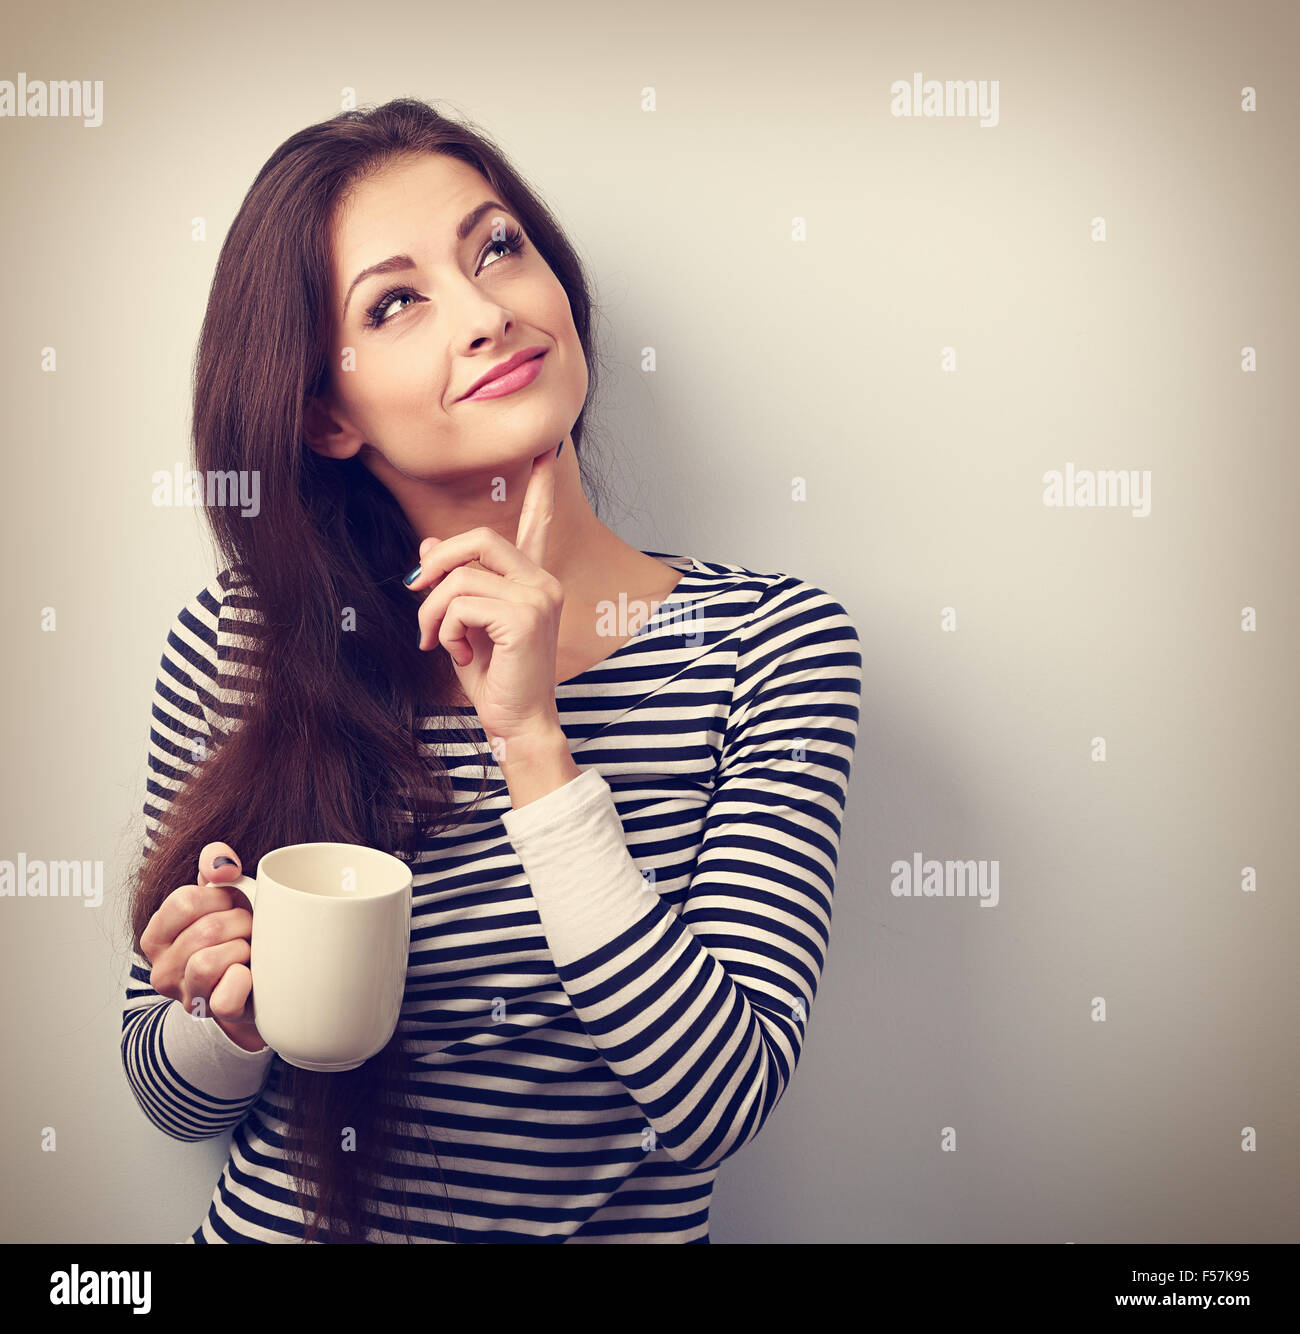 Thinking concerned young woman looking up with cup of coffee. Vintage portrait - Stock Image